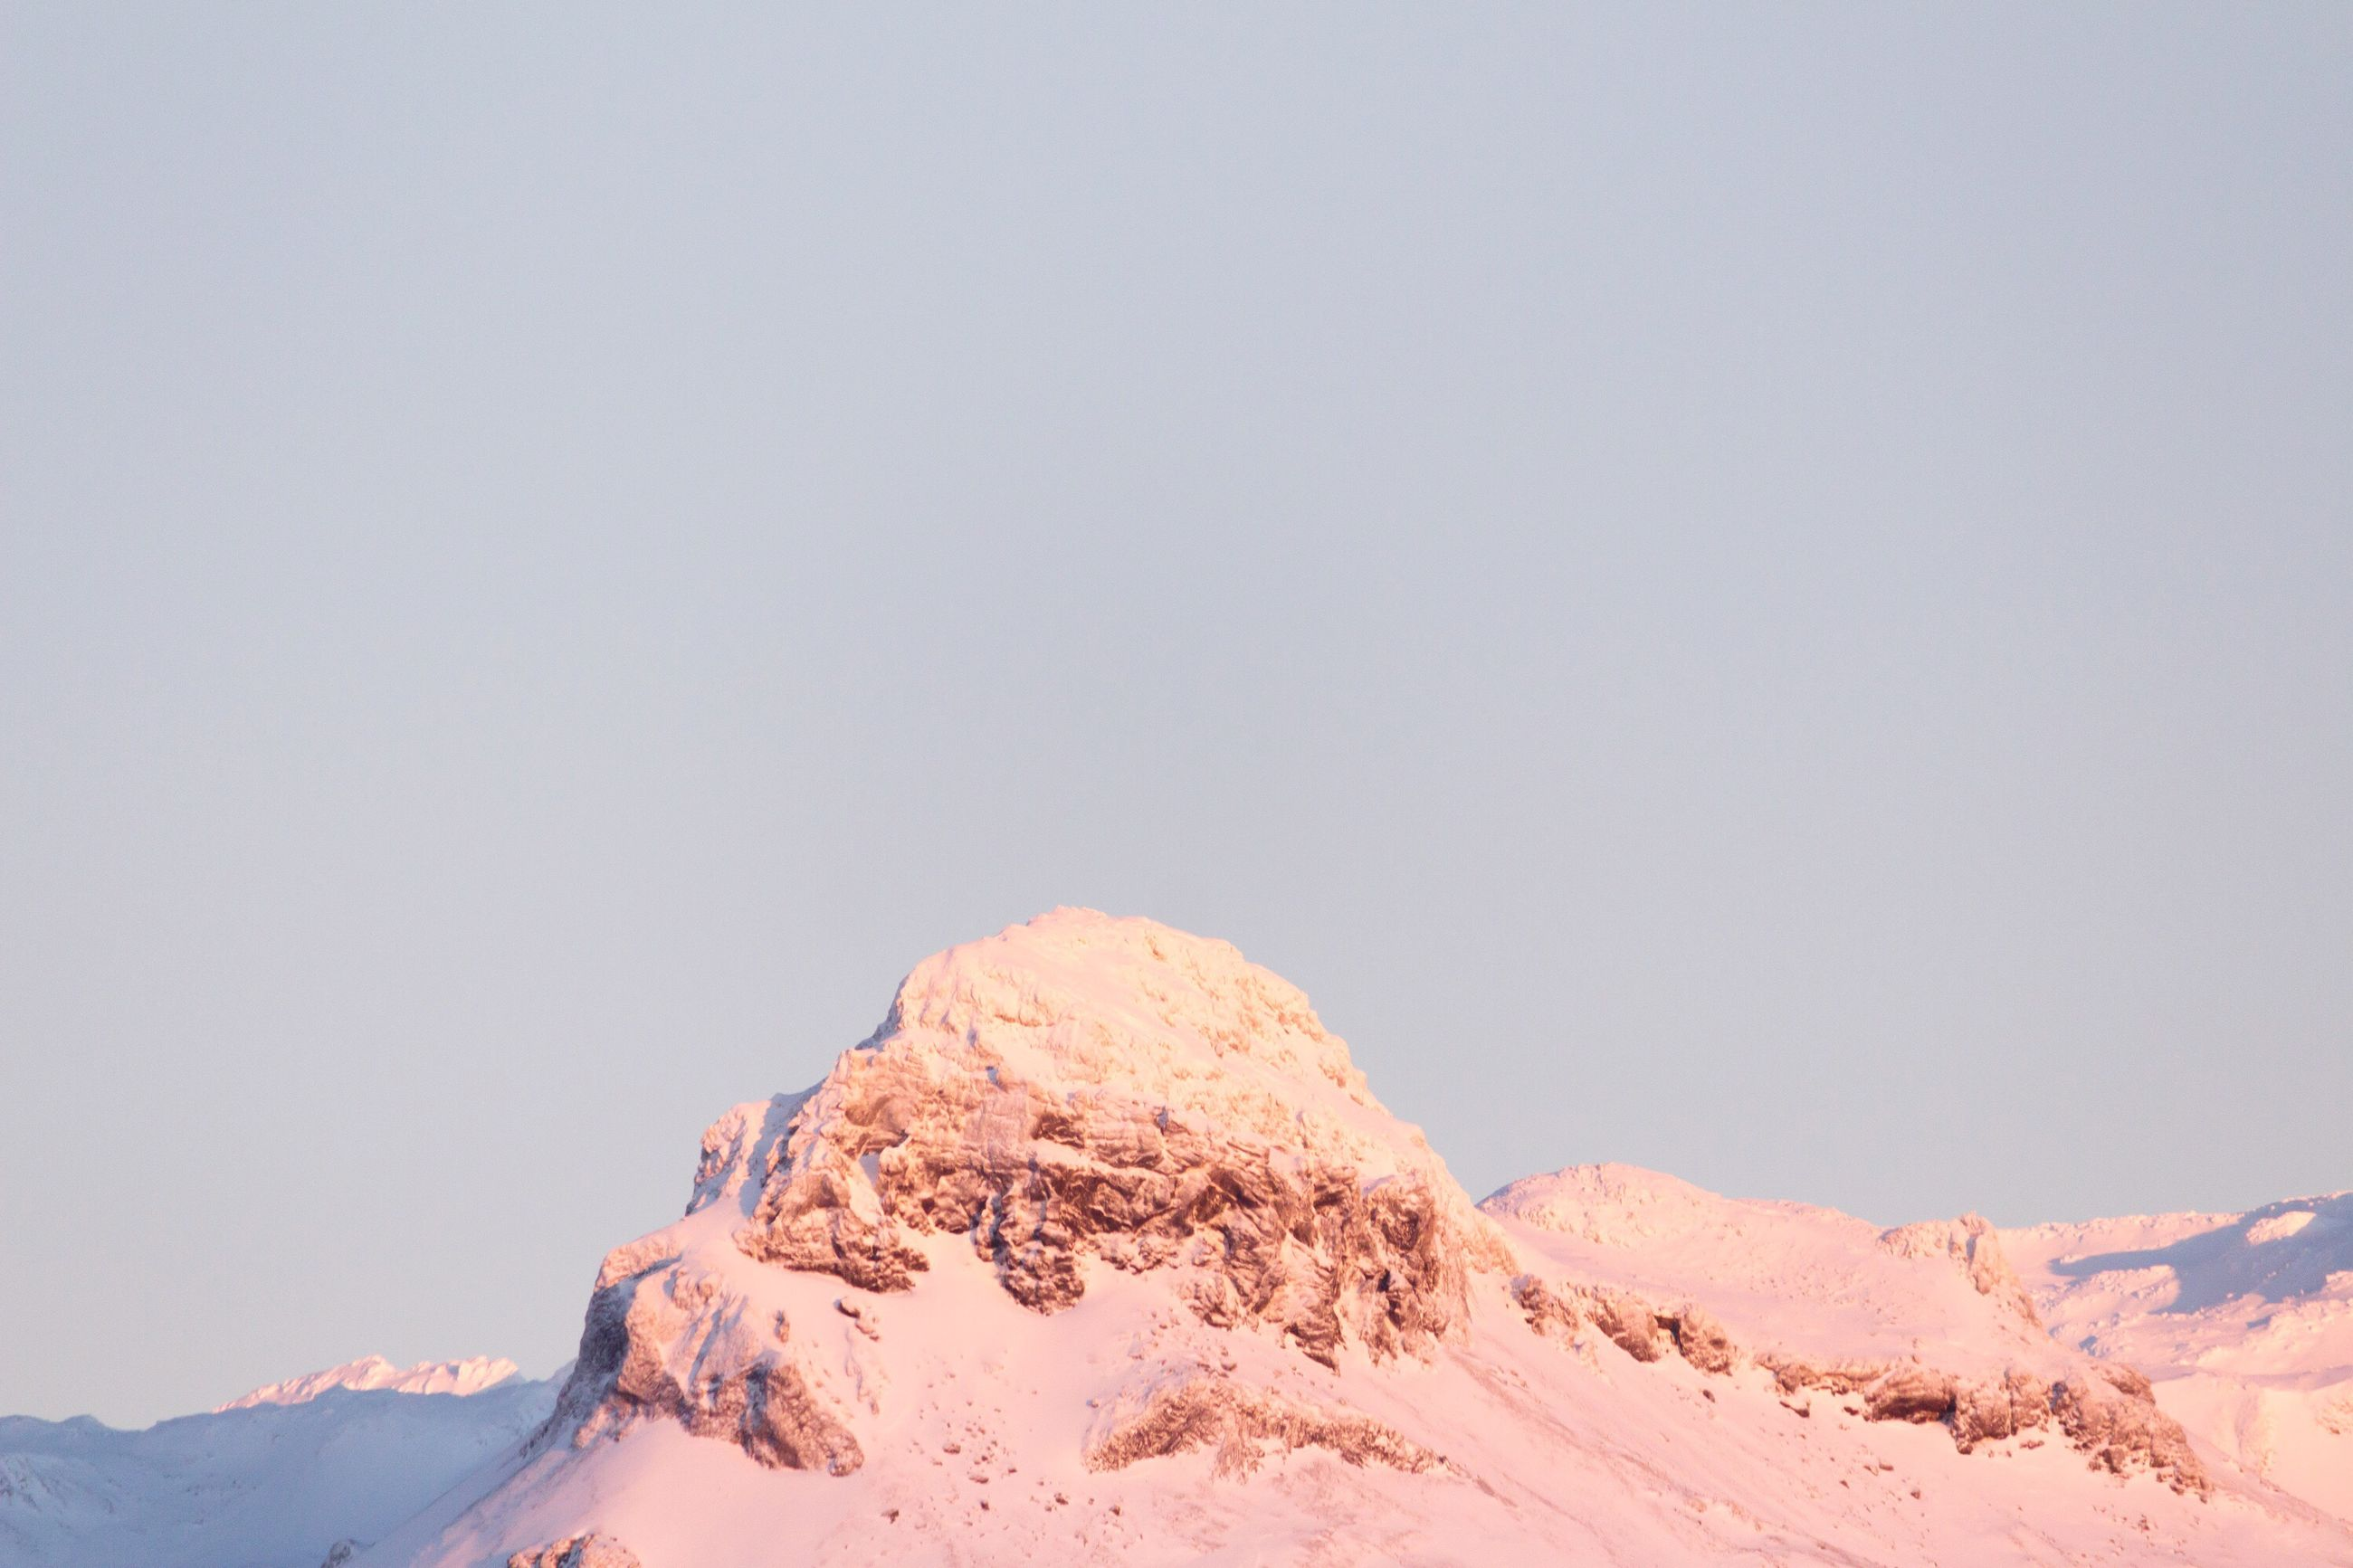 snow, clear sky, tranquility, copy space, tranquil scene, winter, cold temperature, scenics, landscape, mountain, beauty in nature, nature, season, desert, non-urban scene, remote, weather, arid climate, mountain range, outdoors